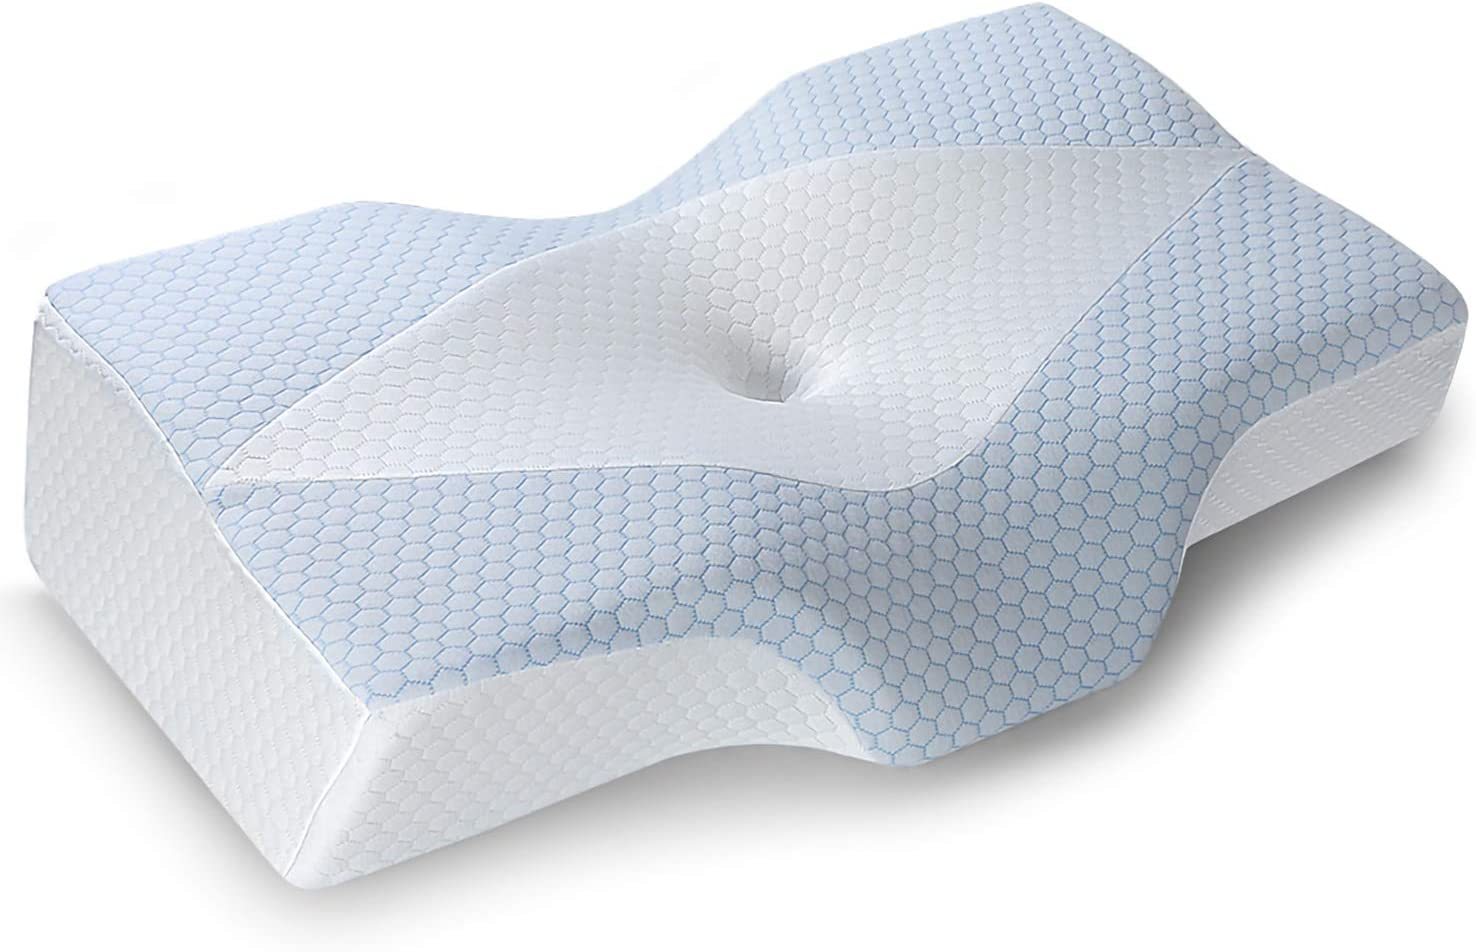 Mkicesky Cervical Pillow for Neck Pain